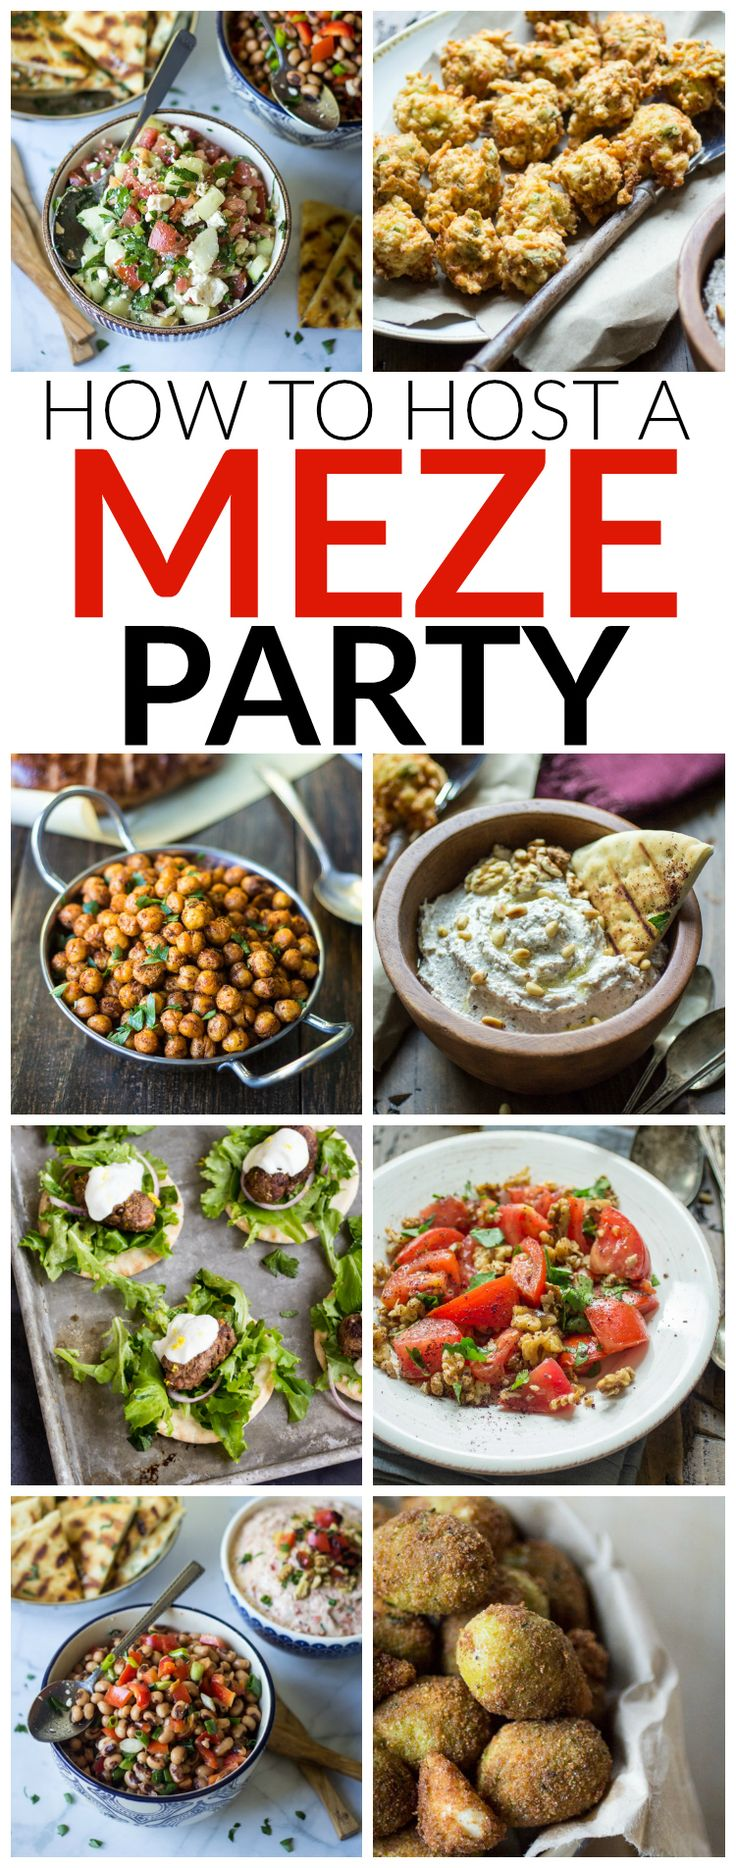 How to Host a Turkish Meze Party: Meze parties are a fun and easy way to plan a night with family and friends. Make the recipes, set the table, and keep the red wine flowing!